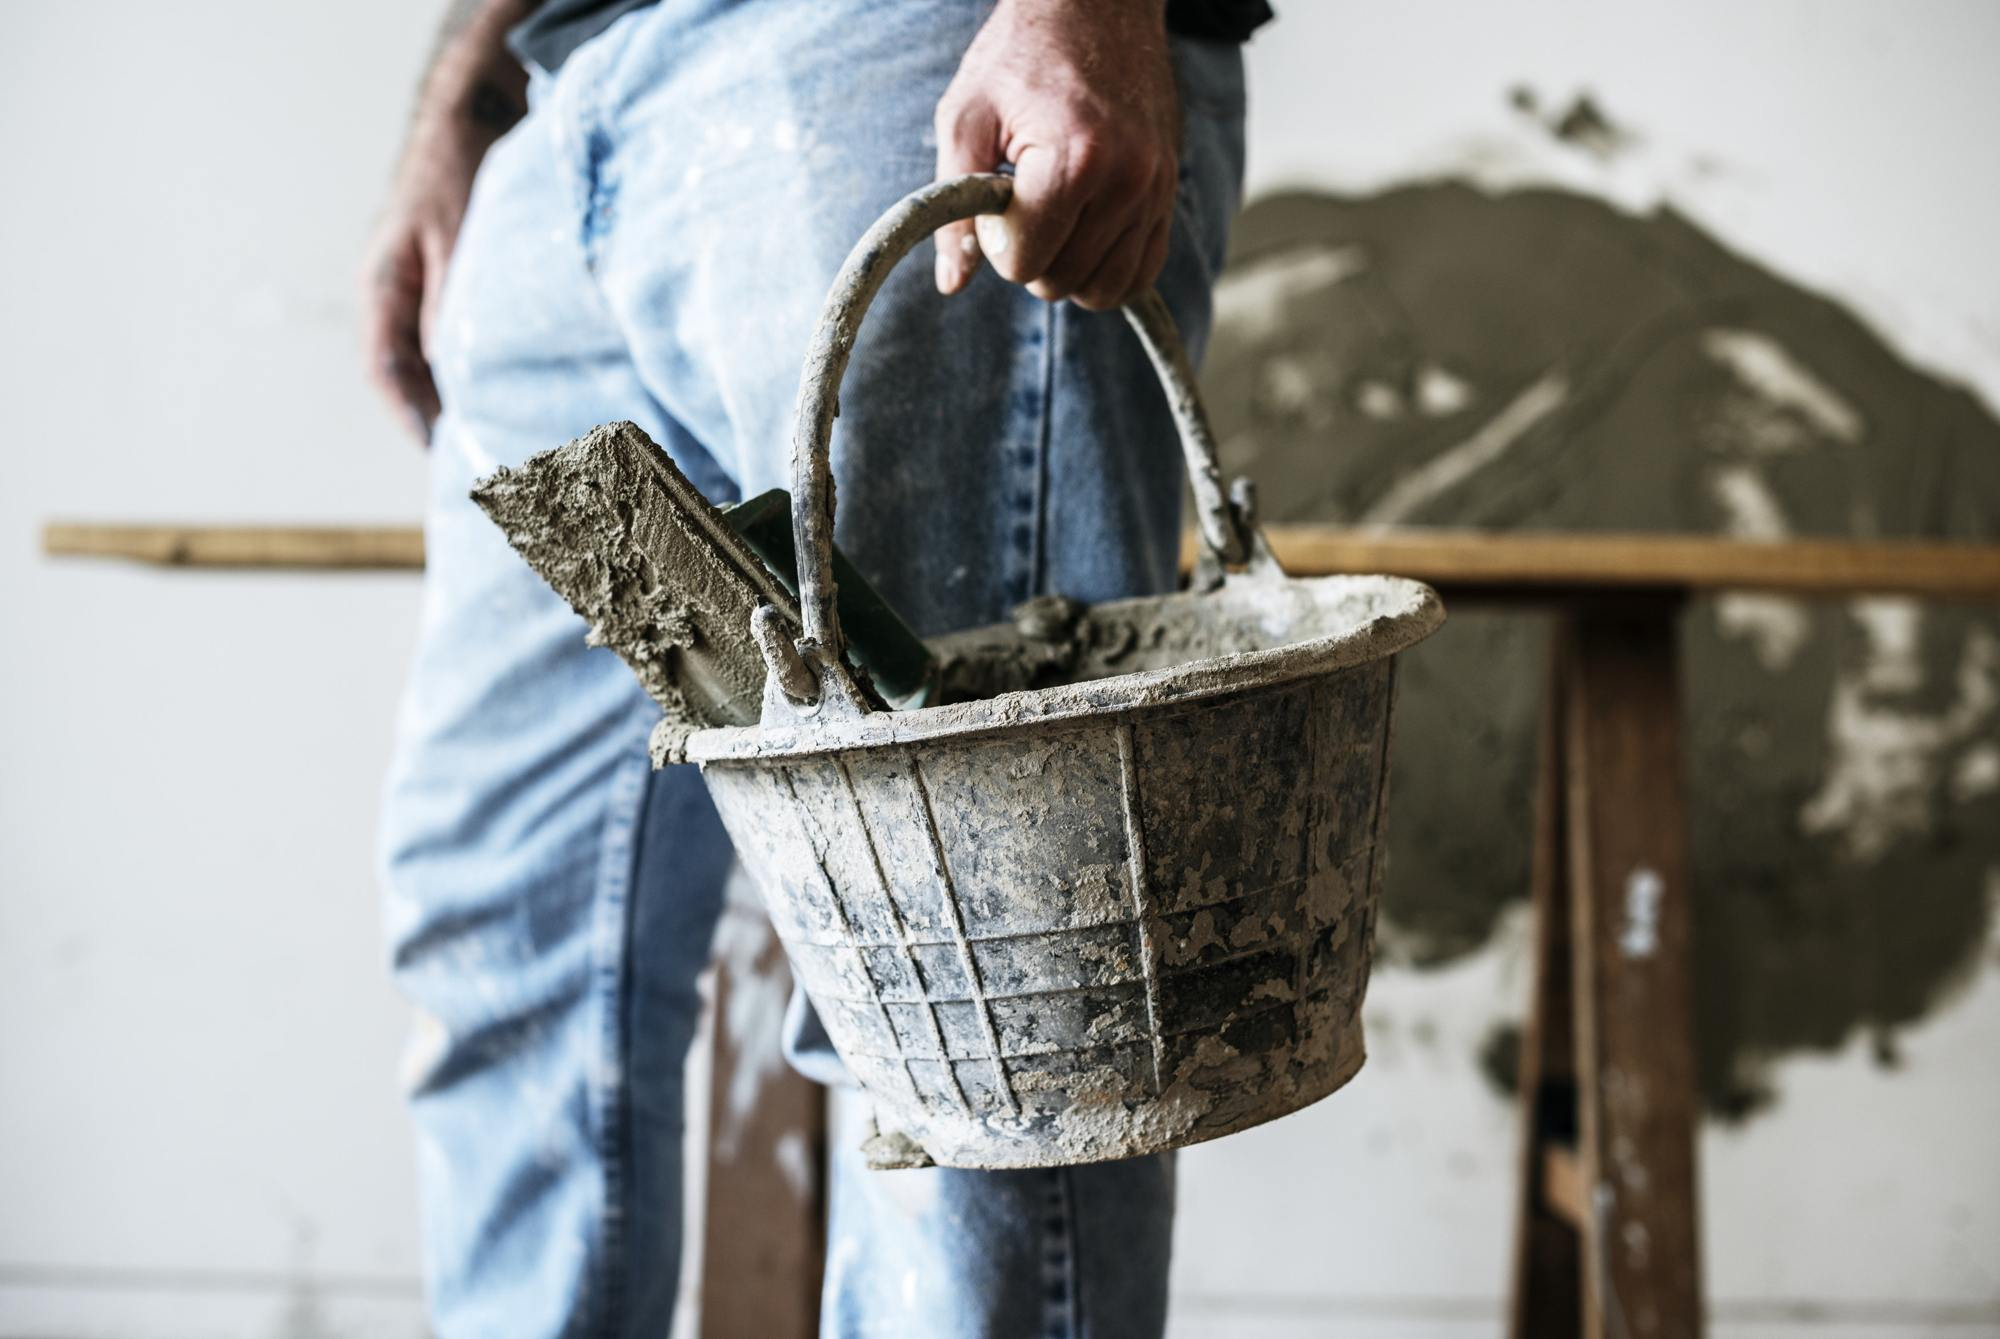 Home foundation repair professional holding bucket of tools.